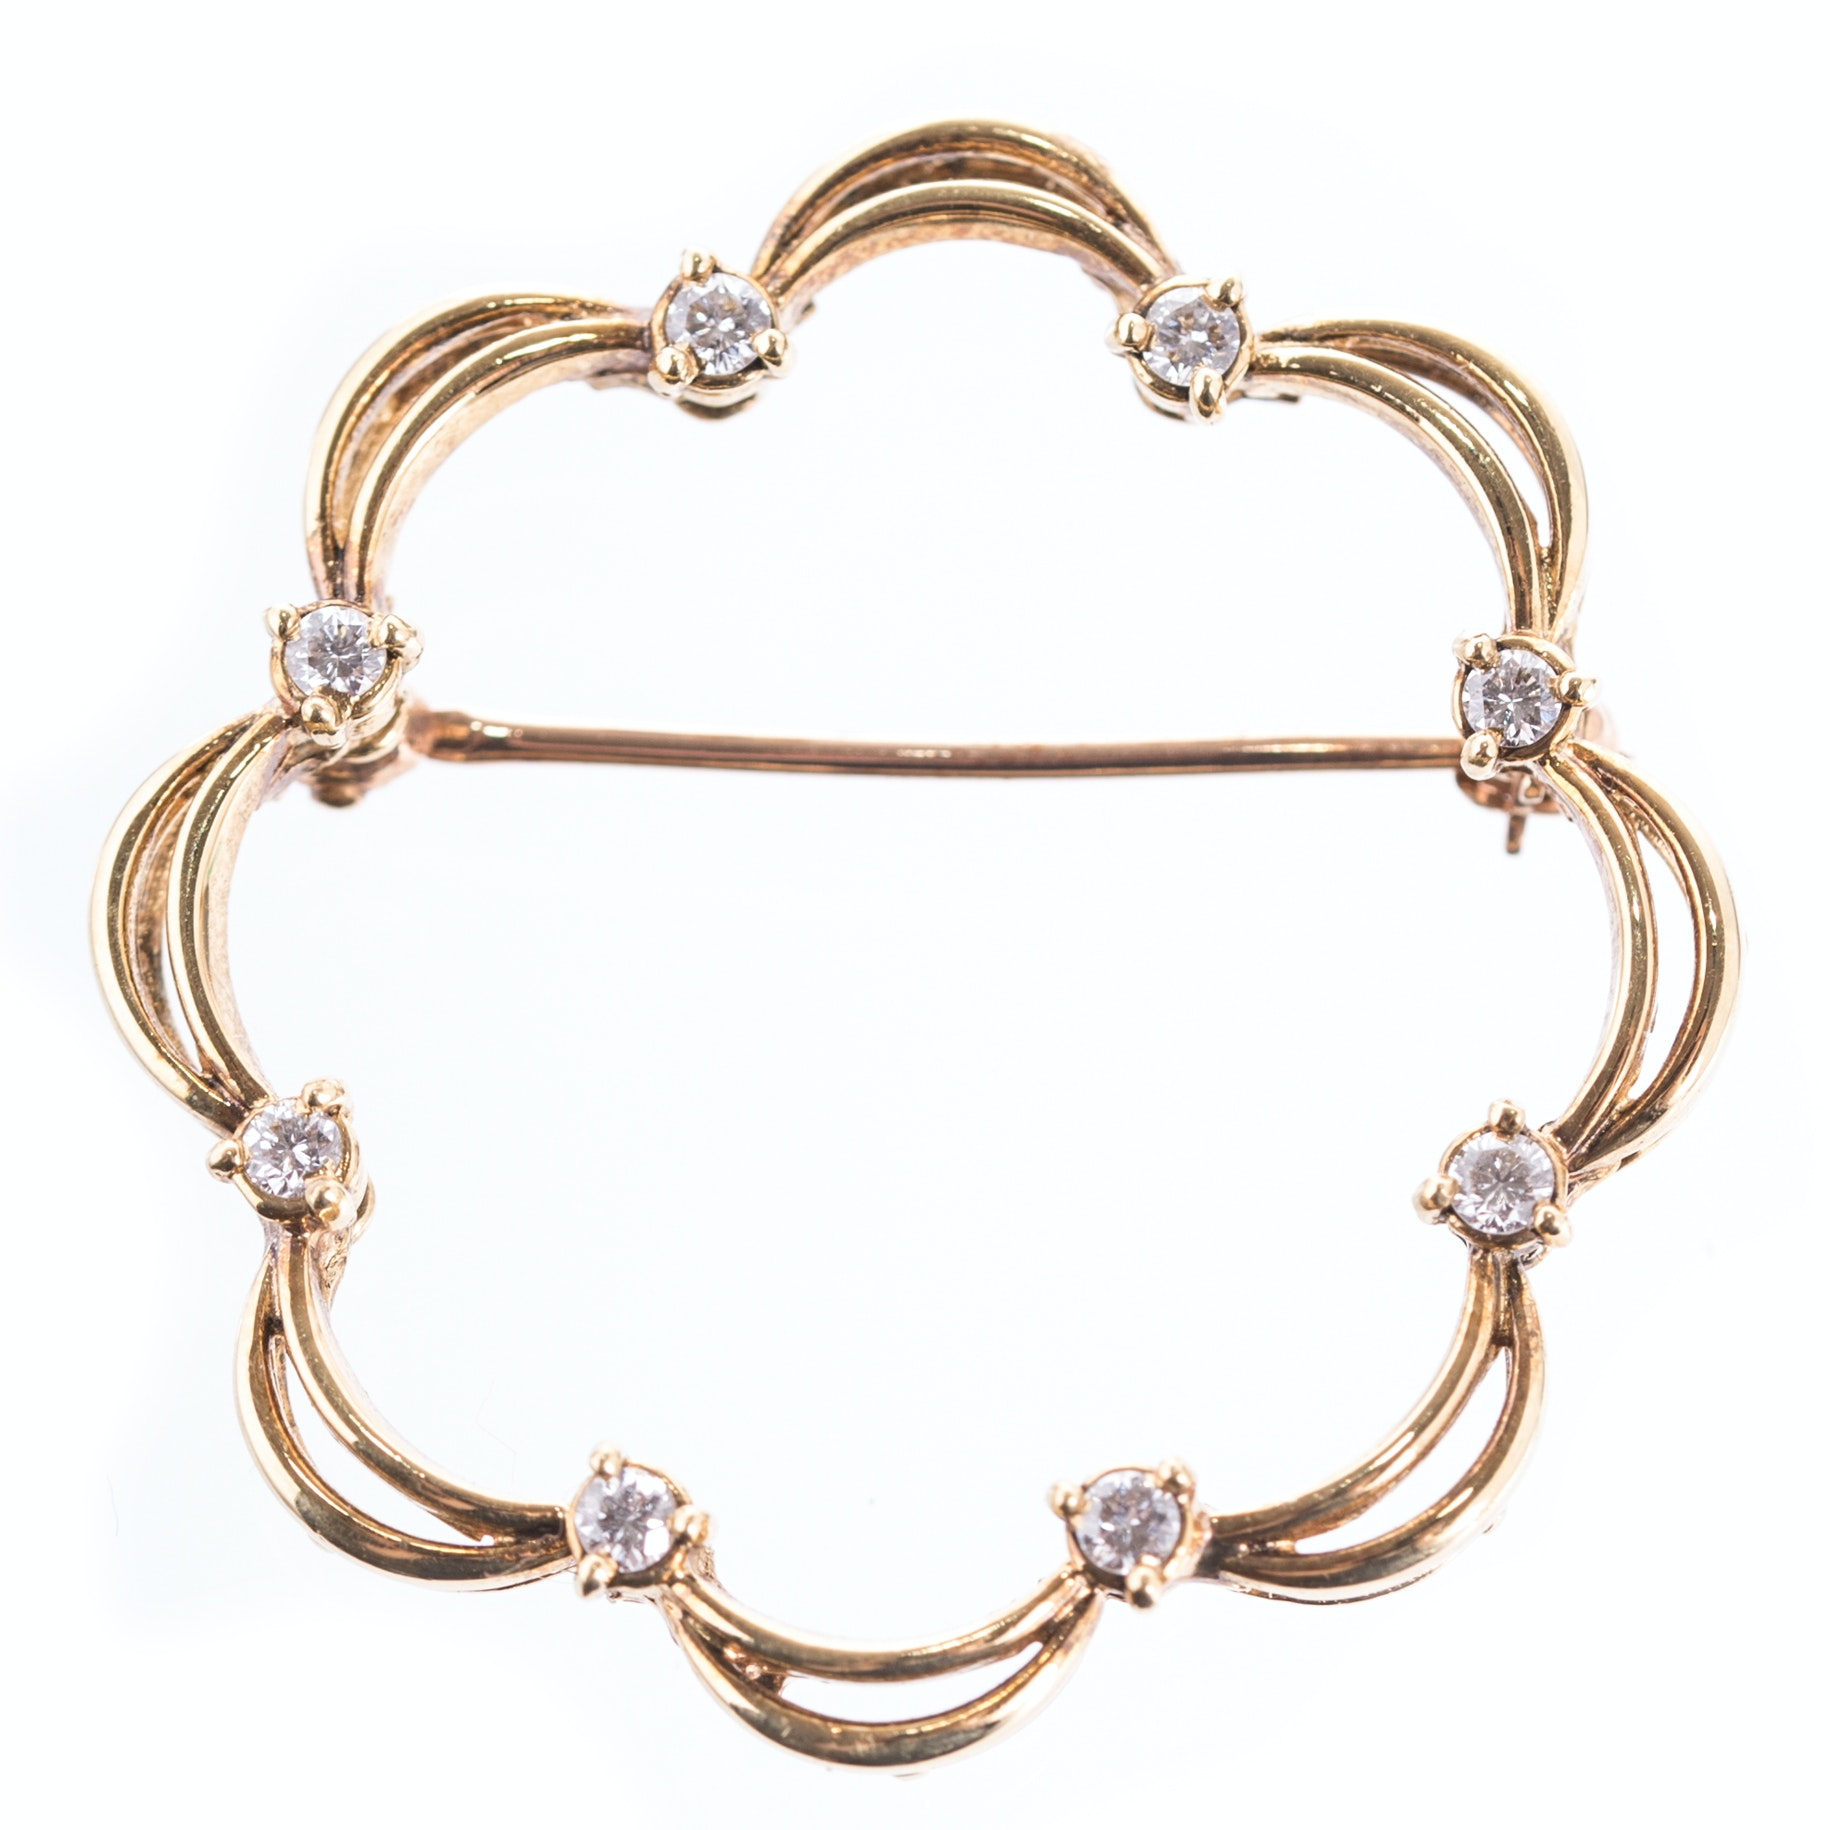 18K Yellow Gold and Diamond Open Curved Brooch